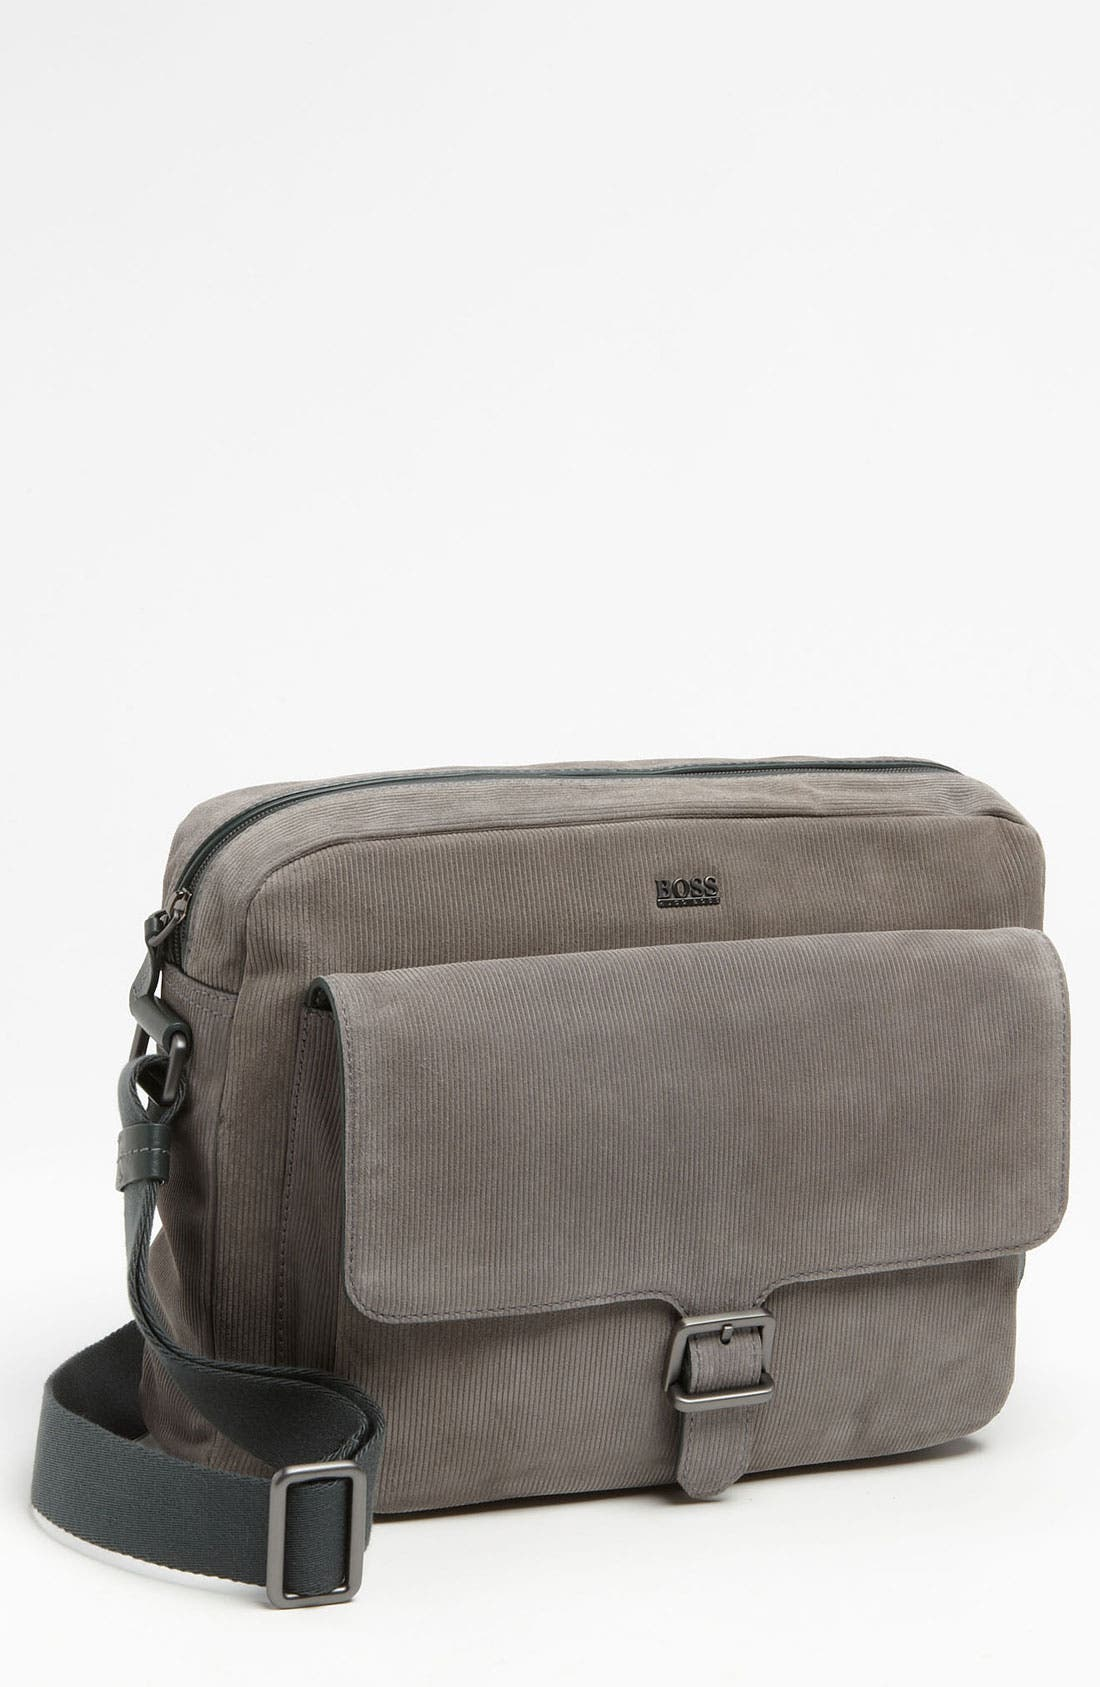 Alternate Image 1 Selected - BOSS Black 'Carmos' Messenger Bag